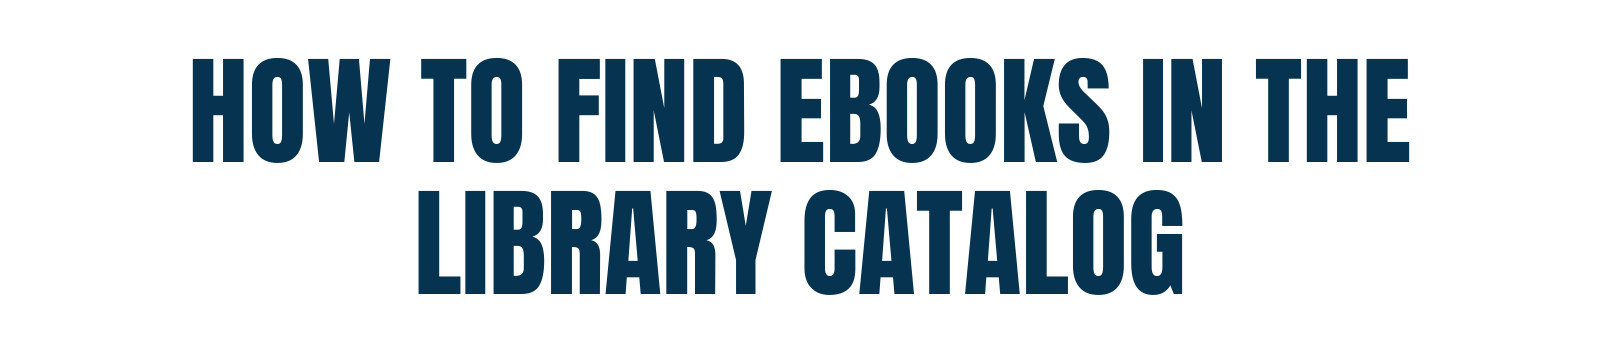 How to find ebooks in the library catalog